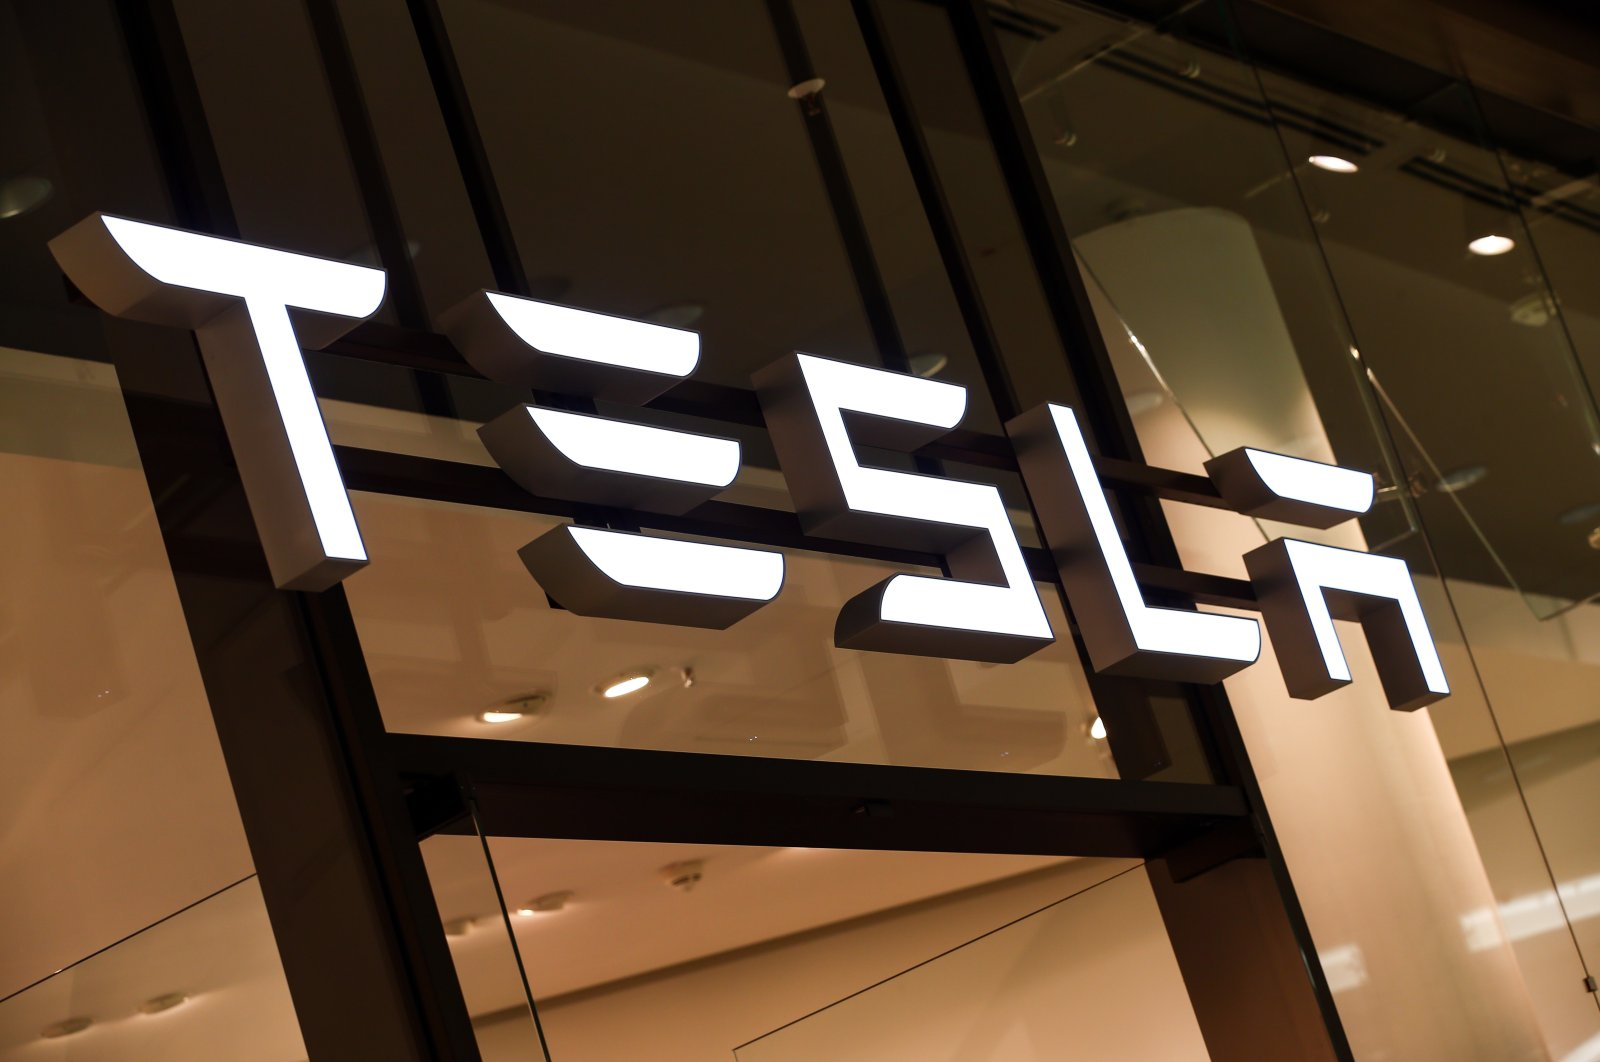 A Tesla logo is seen in a showroom in Berlin, Germany, November 2019. (EPA Photo)